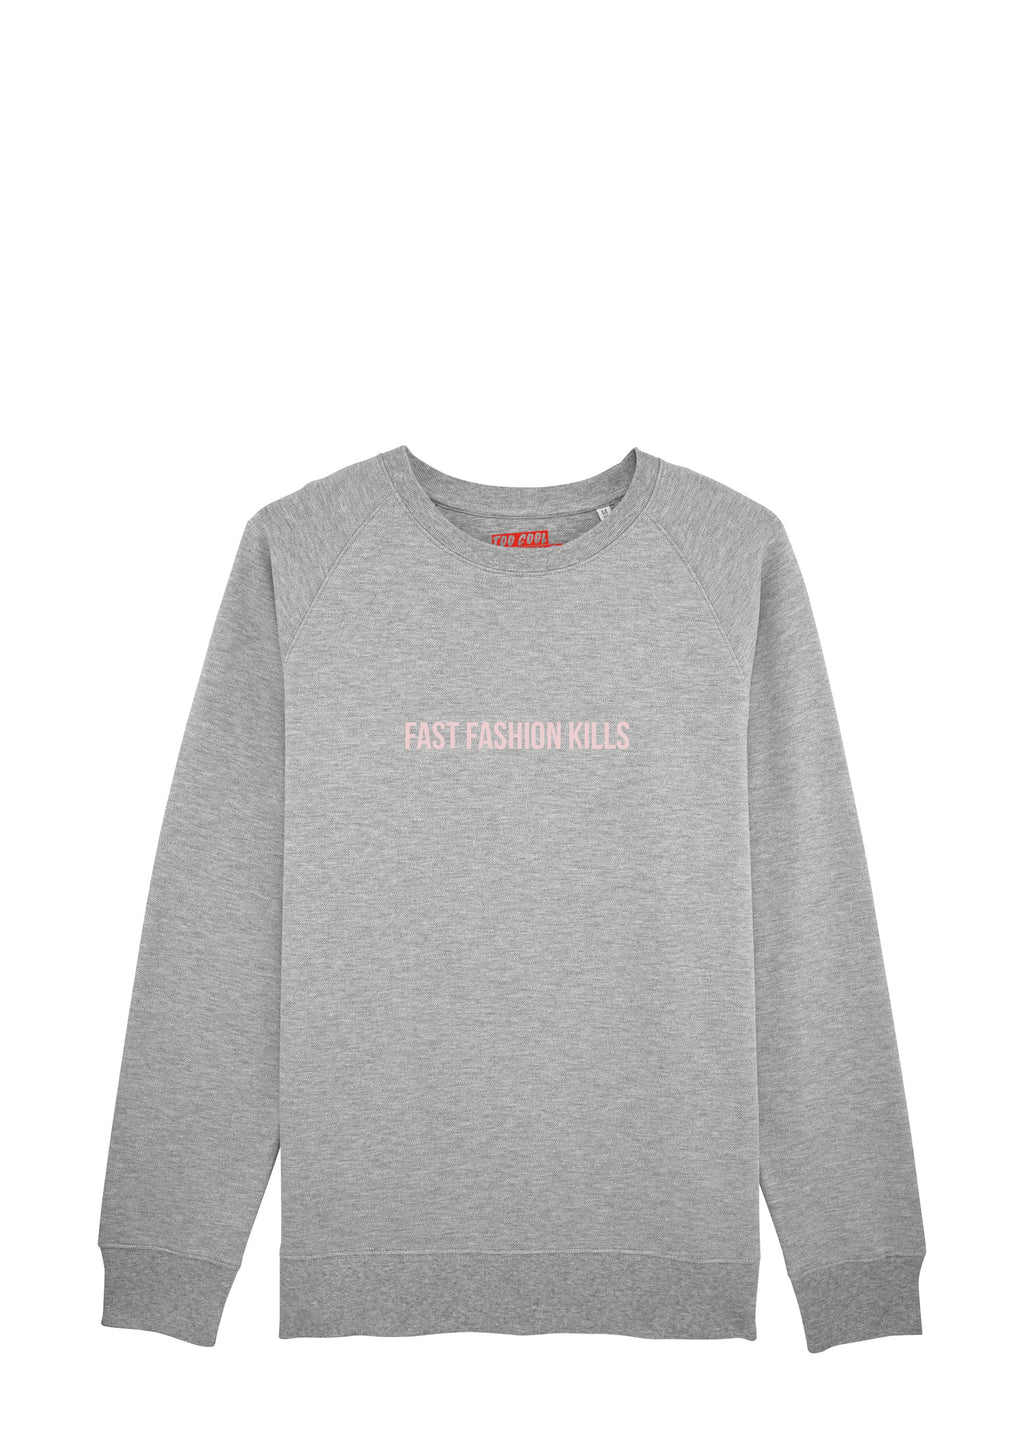 FAST FASHION KILLS SWEATER (men)